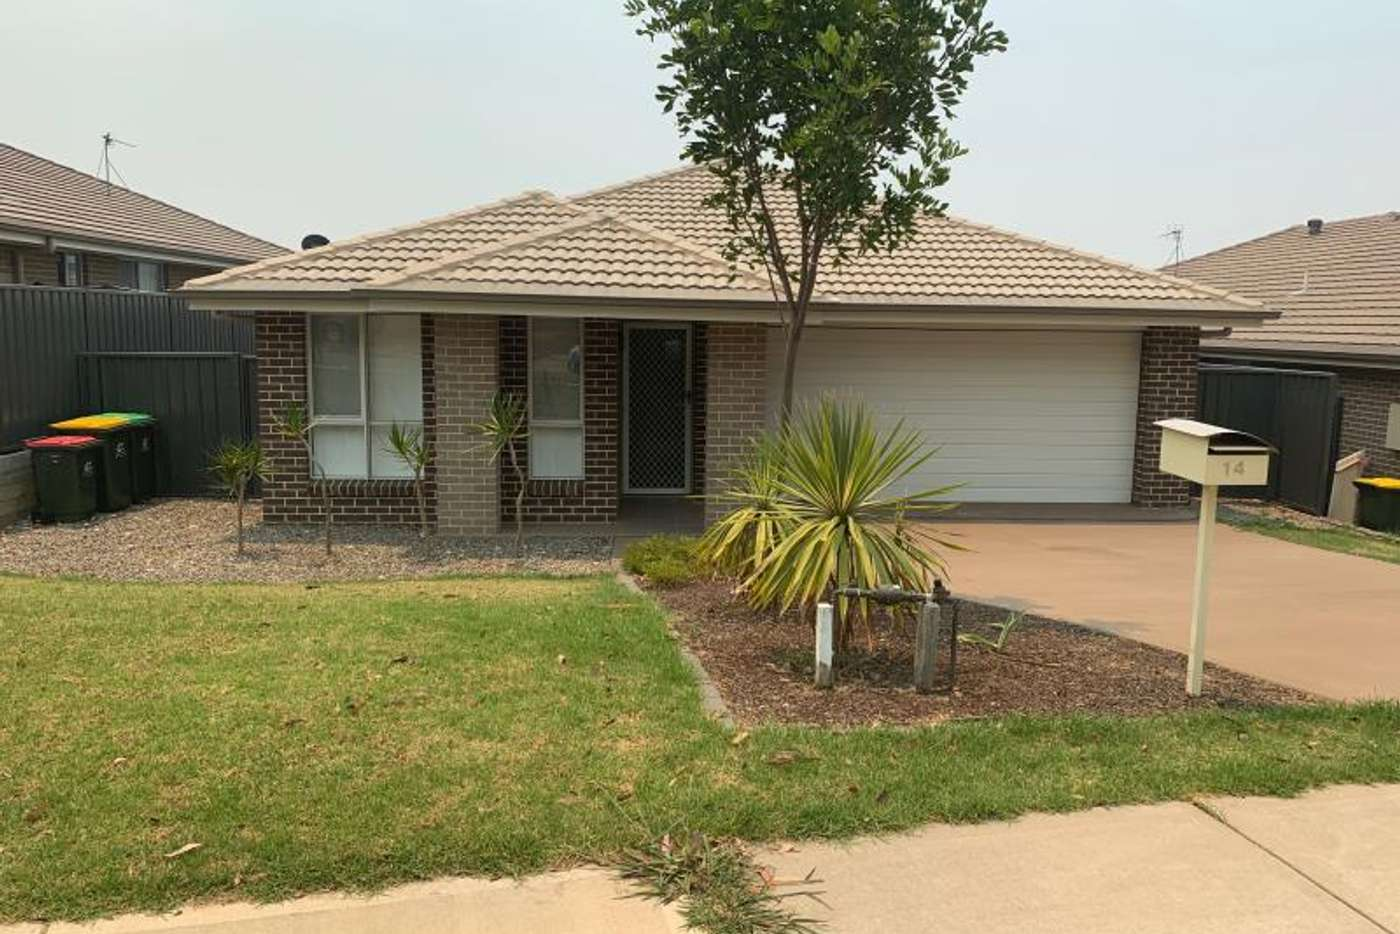 Main view of Homely house listing, 14 Creswell St, Wadalba NSW 2259